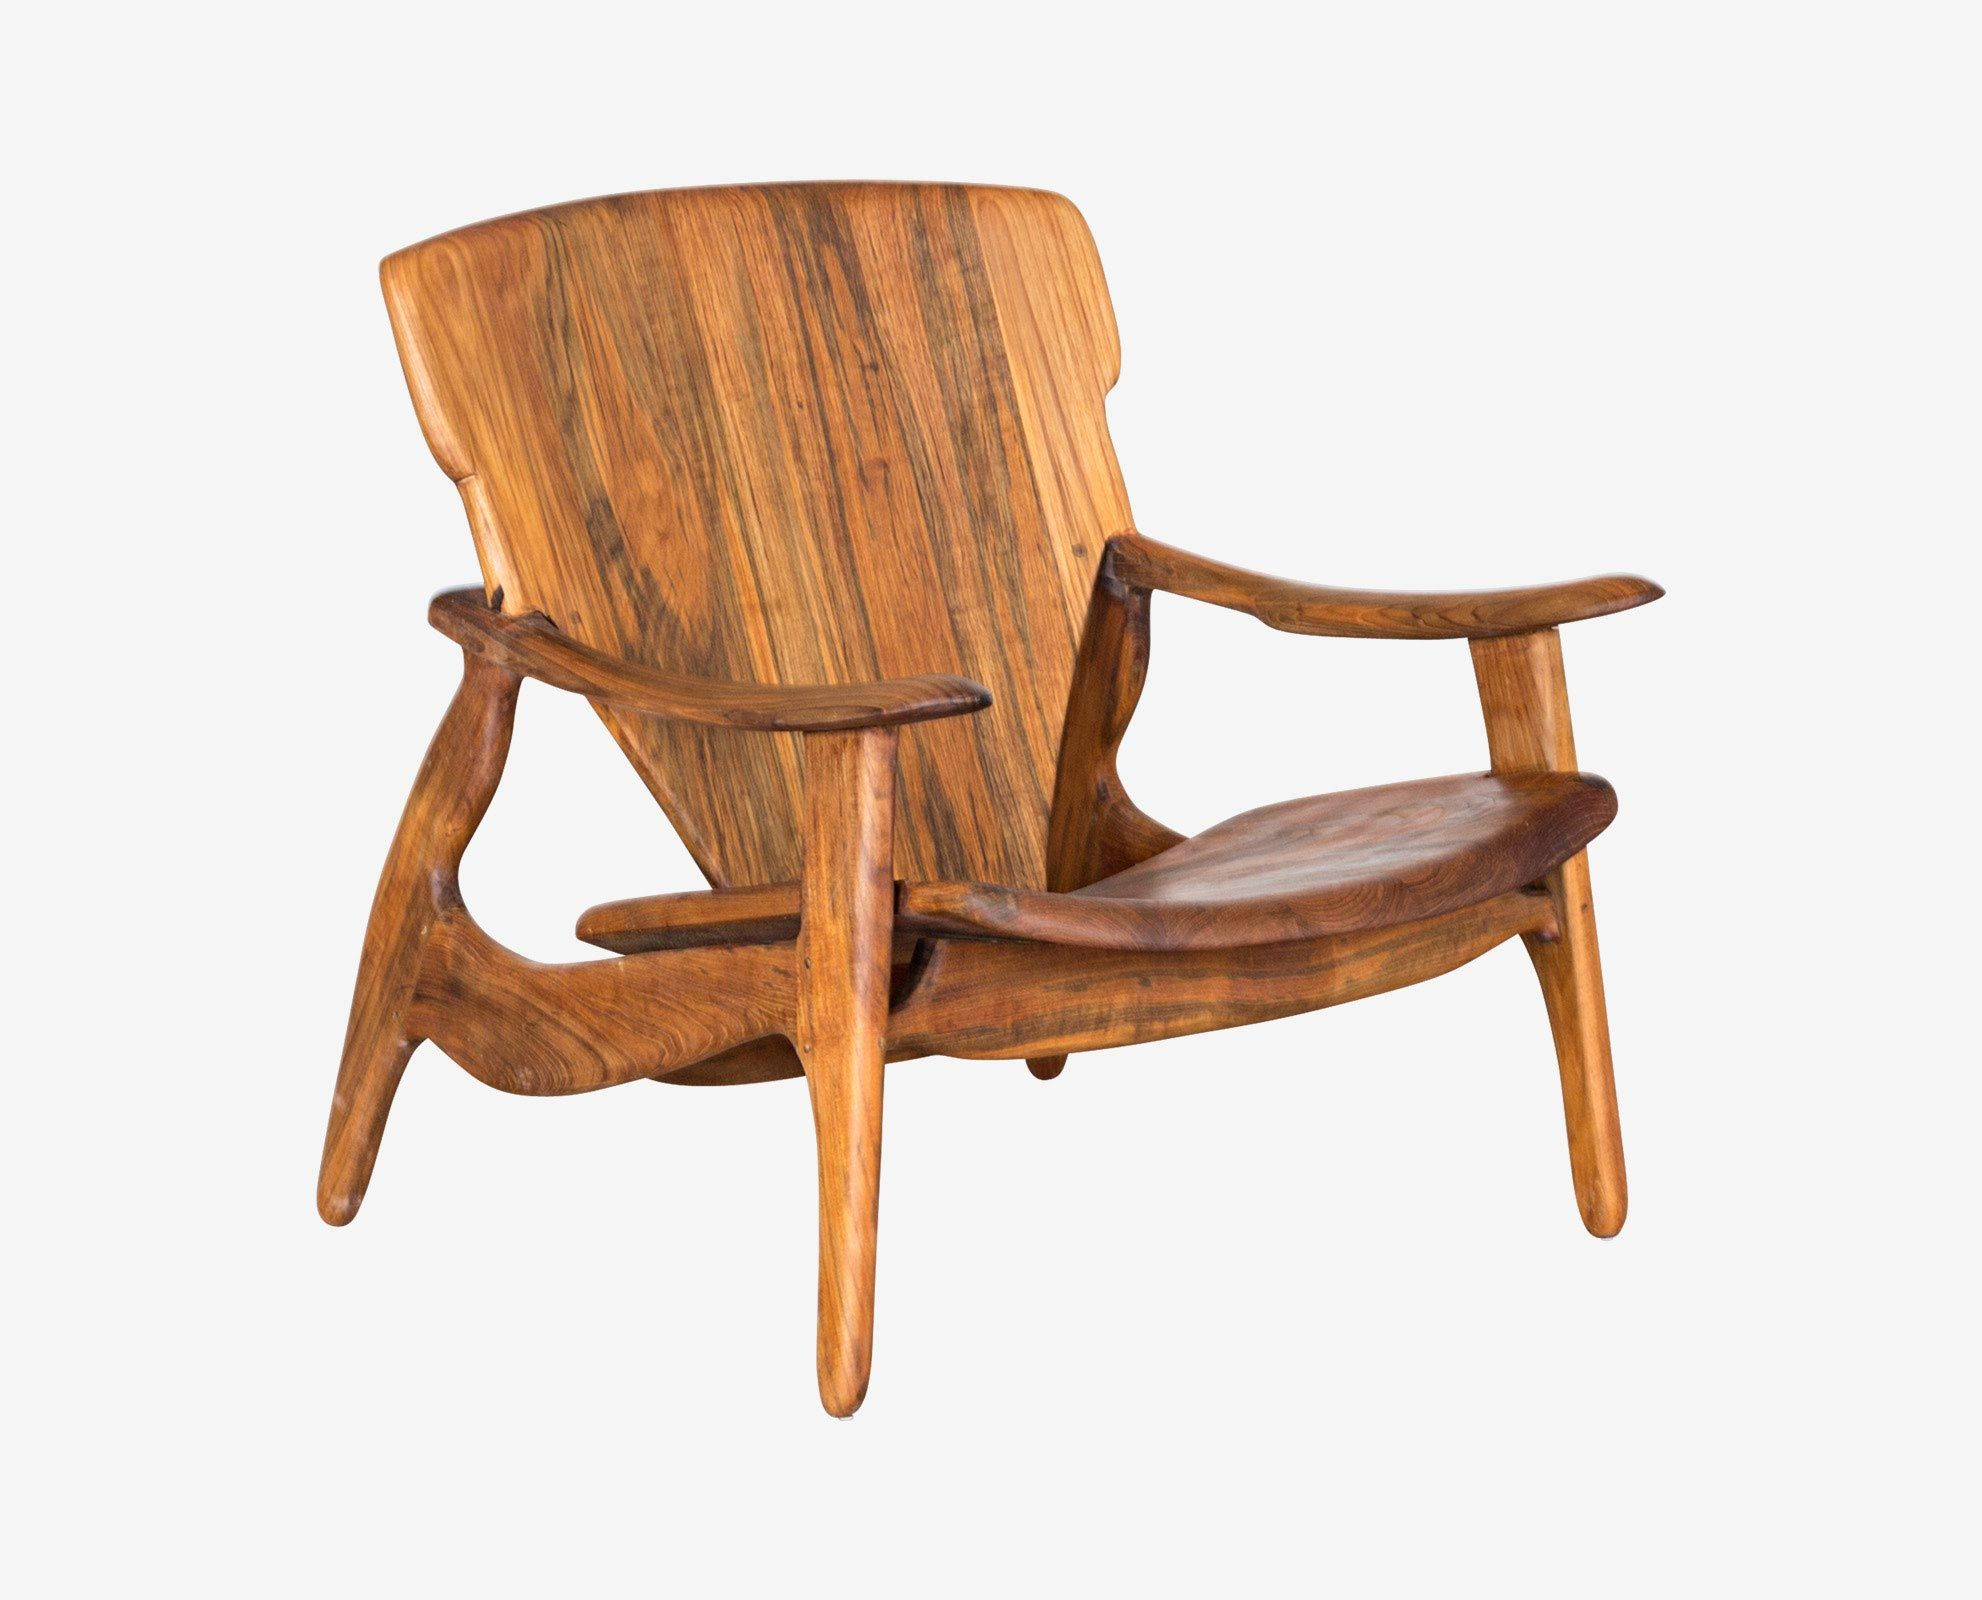 dania furniture products lank chair snd w chairs